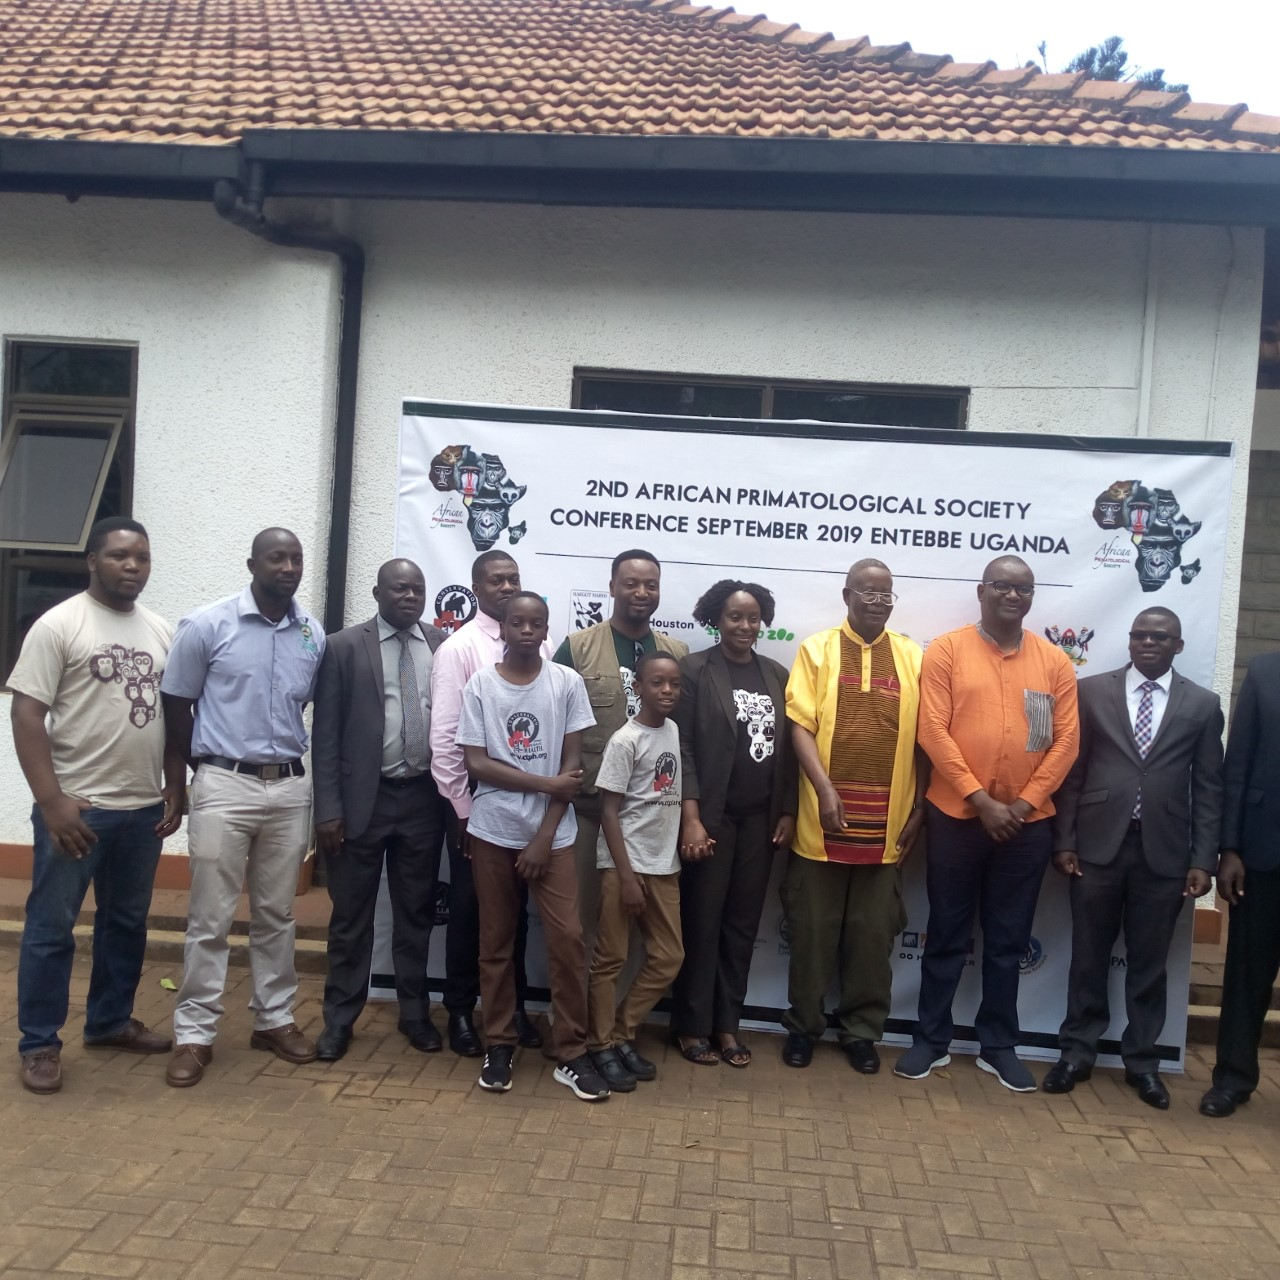 The Organisers of the African Primatological Society Conference 2019 pose for a group photo at Tuesday, August 28, at the Media centre. (PHOTO/ Abraham Mutalyebwa)